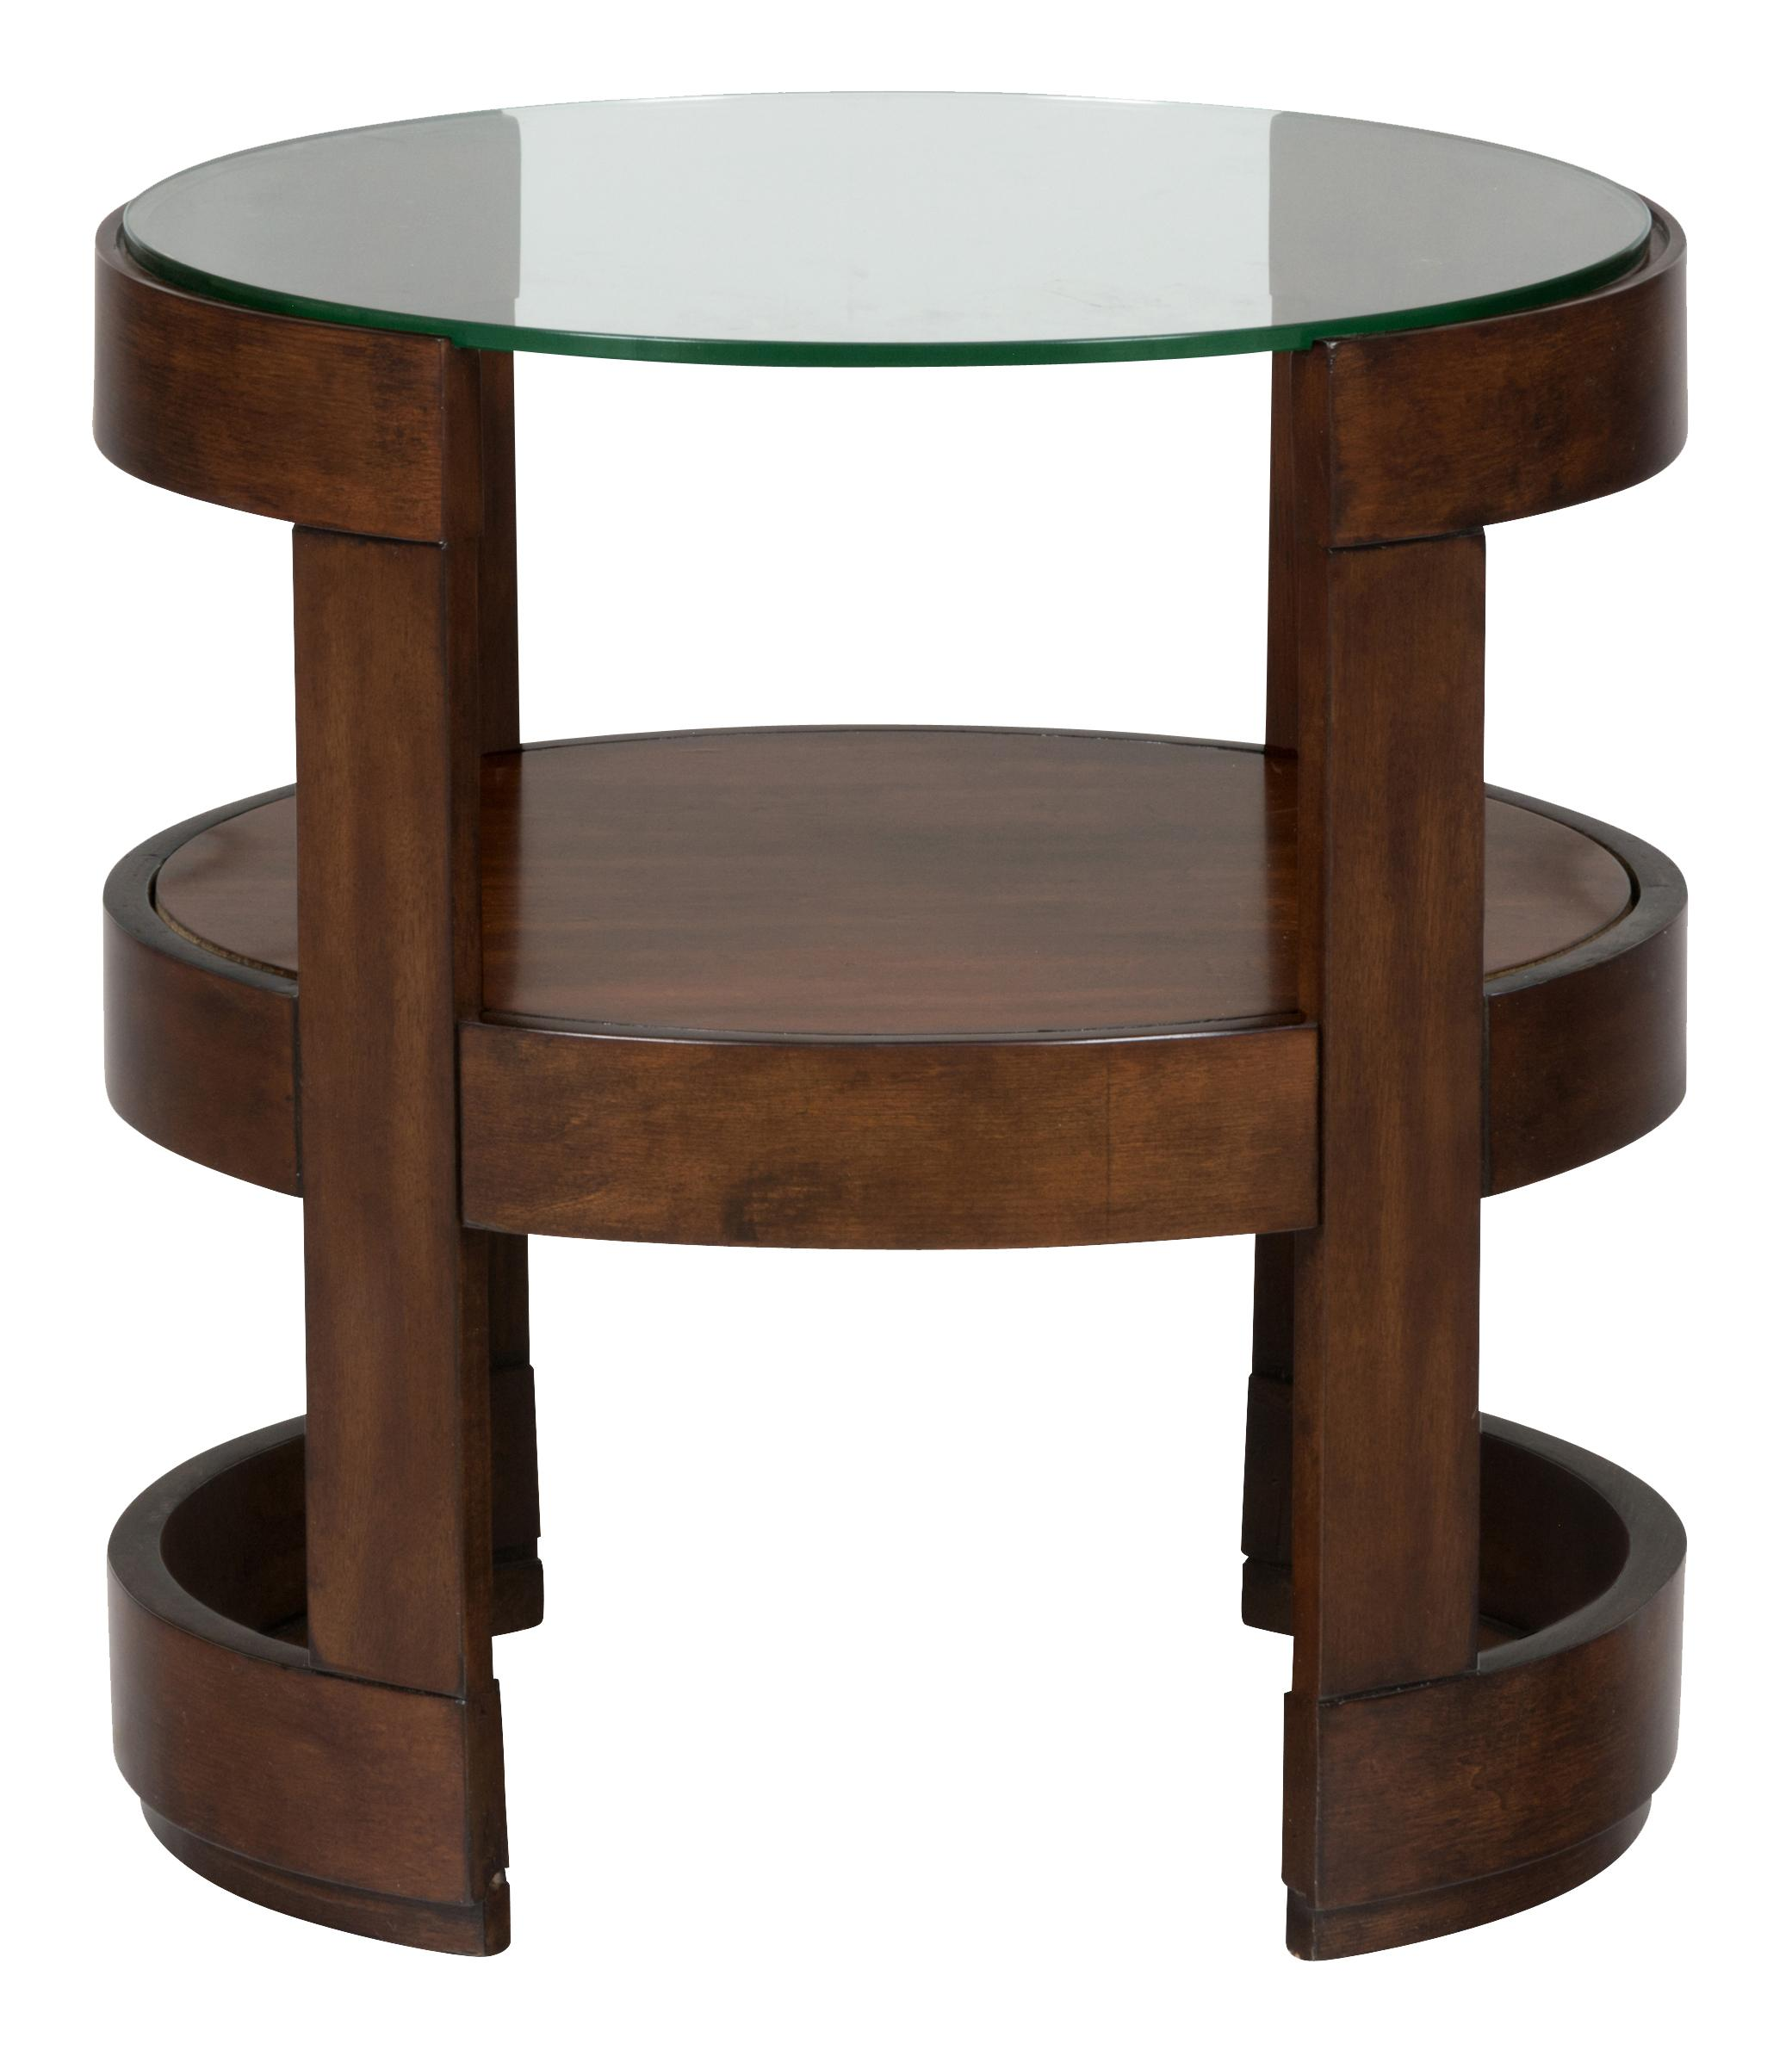 Jofran Avon Birch Round End Table with Glass Top - Item Number: 348-3